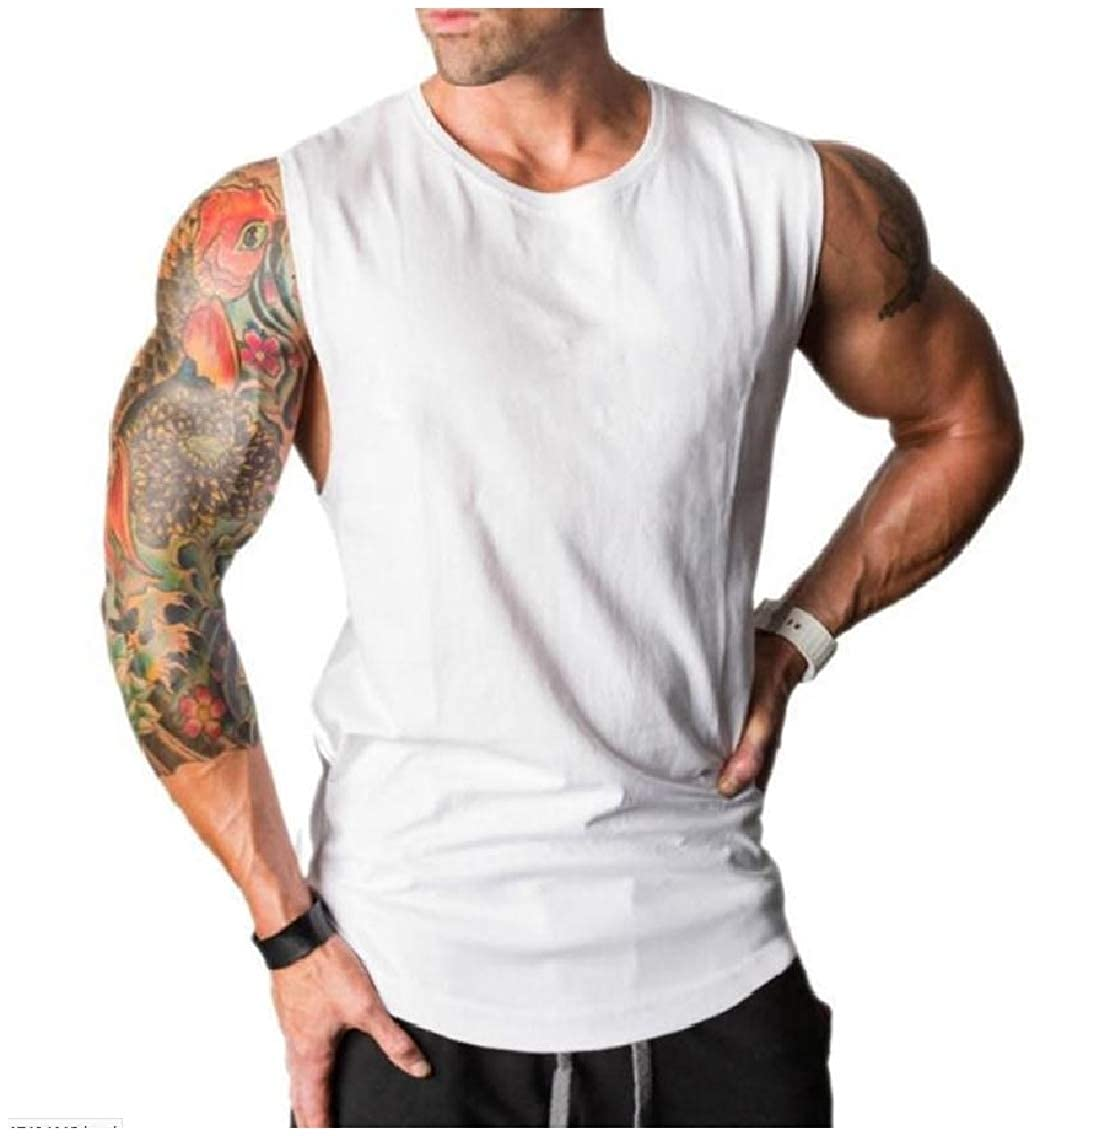 Coolred-Men Pure Color Sports Crew Neck Cotton Sleeveless Vest Tank Top Shirt